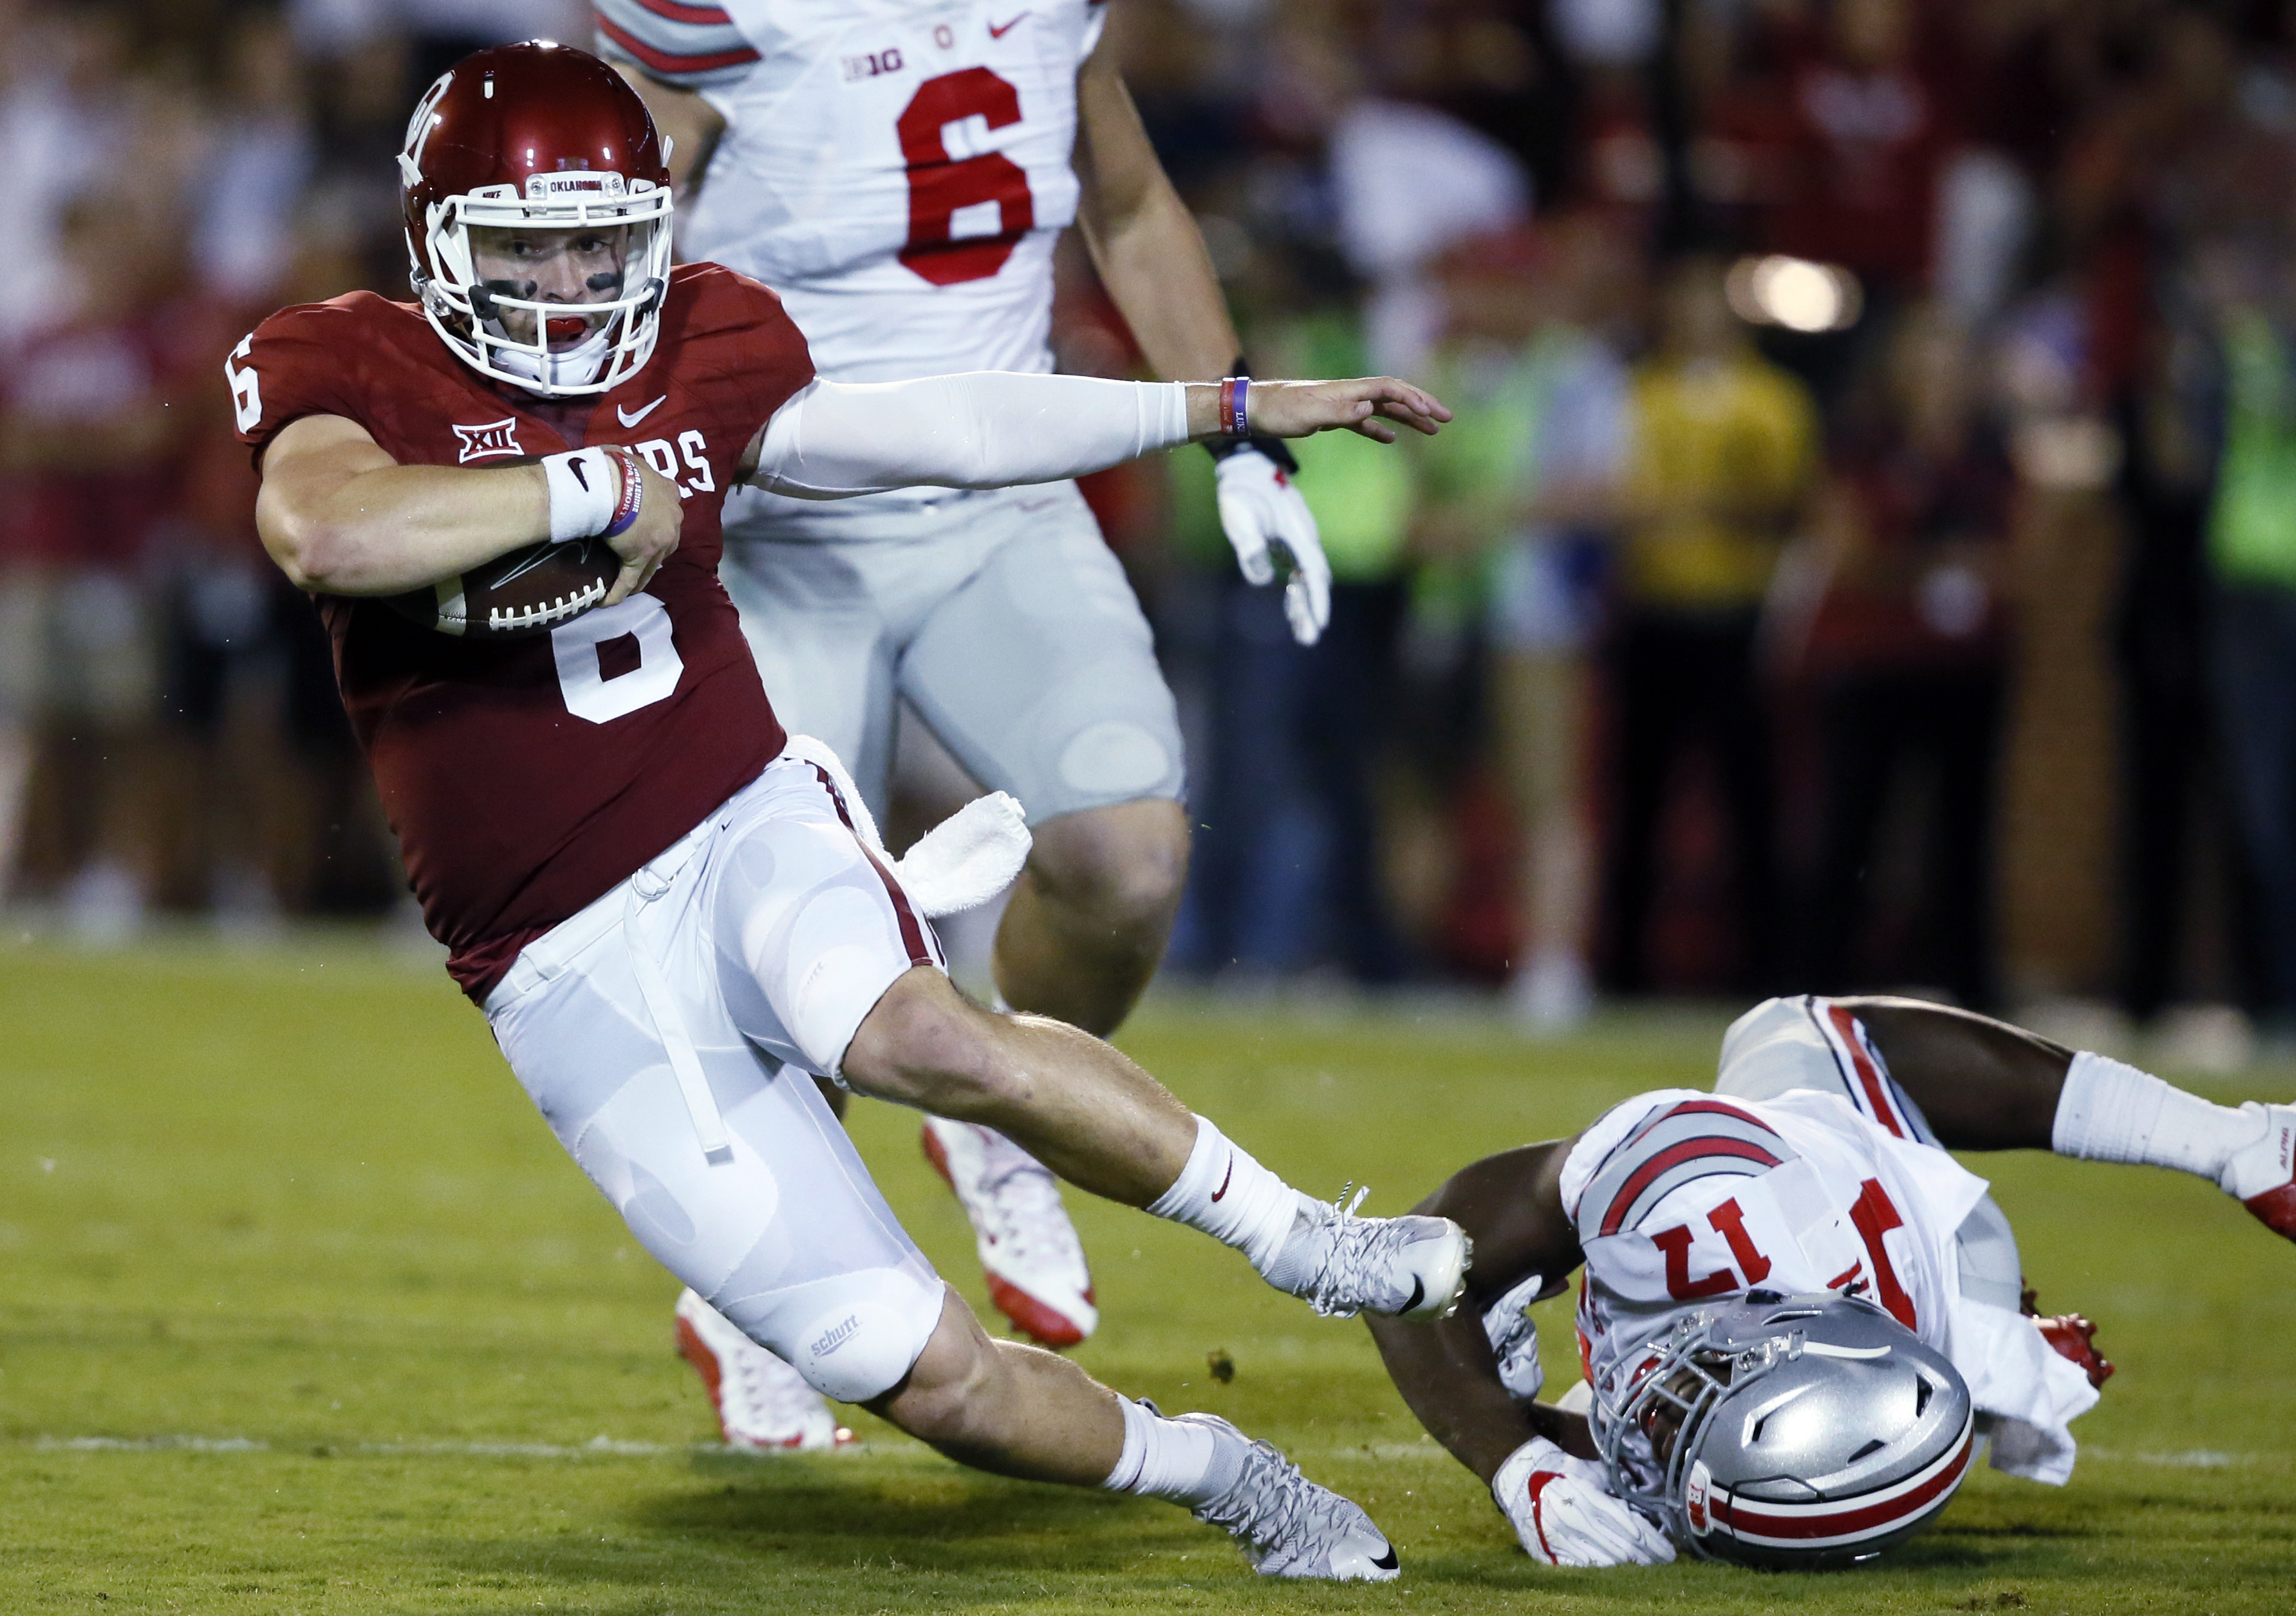 FILE - In this Sept. 17, 2016, file photo, Oklahoma quarterback Baker Mayfield (6) fights off a tackle by Ohio State linebacker Jerome Baker, right, during an NCAA college football game in Norman, Okla. Mayfield came into the season as one of the big-name